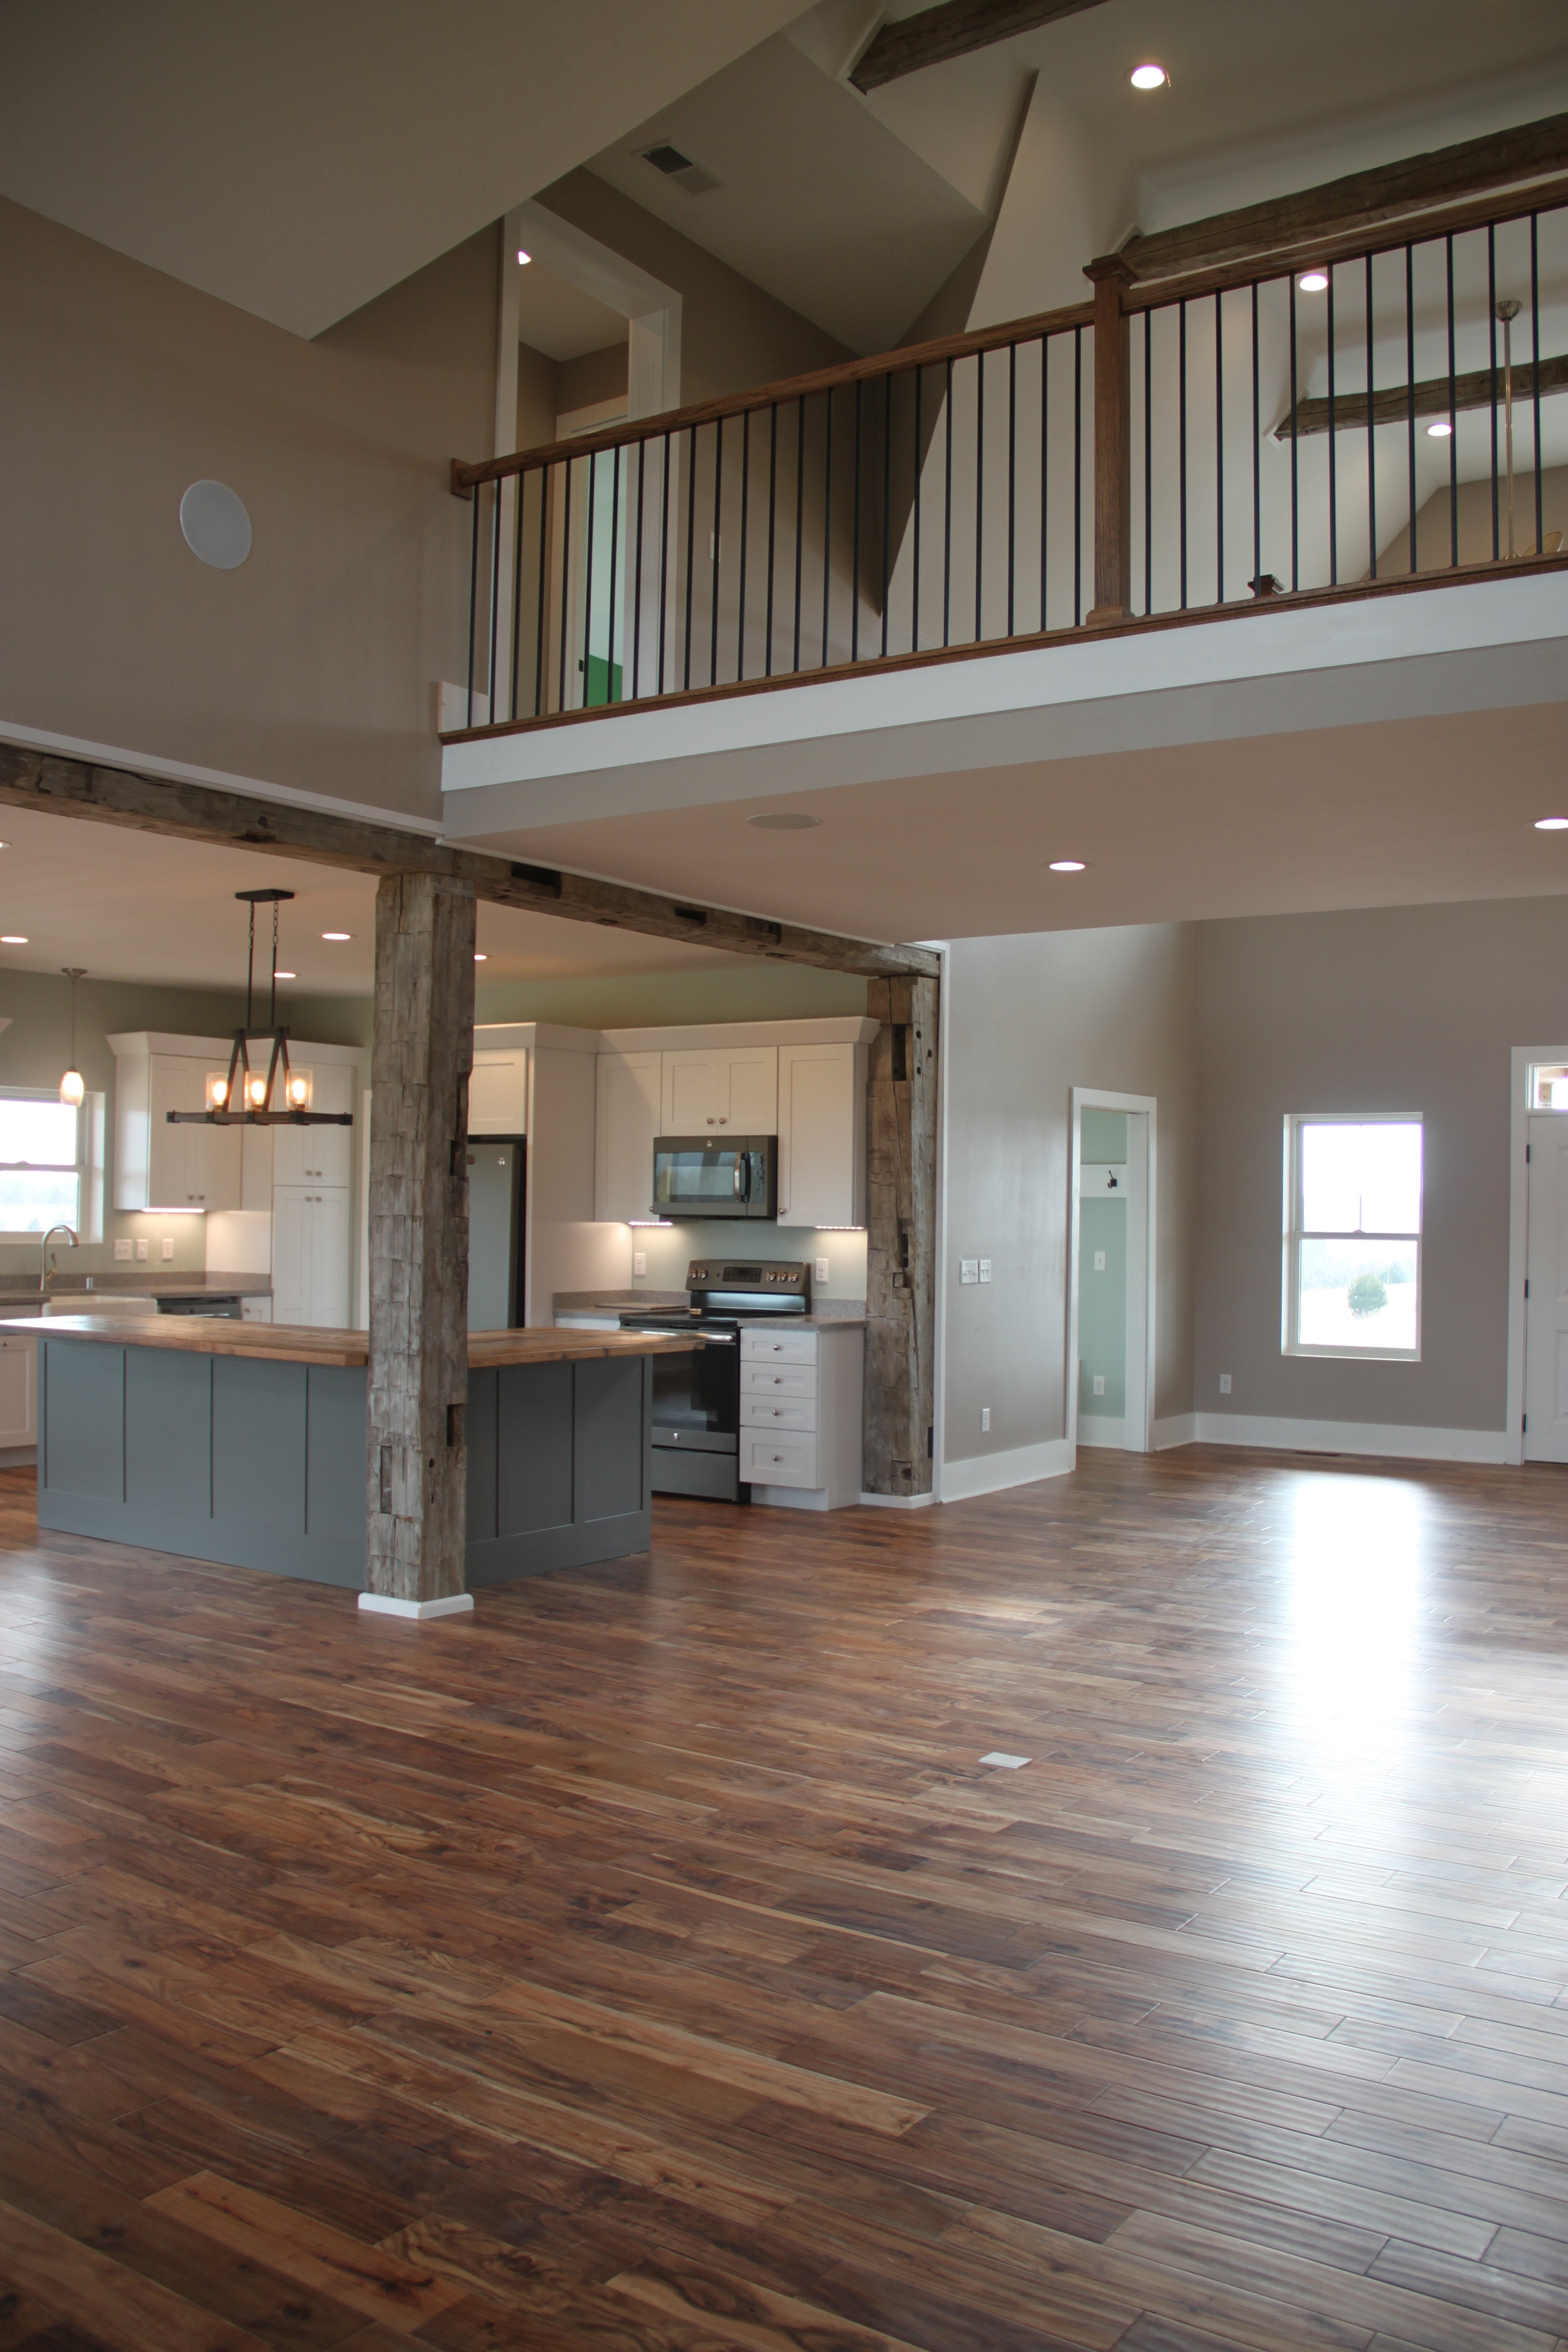 The Sadieville Lodge has vaulted ceilings with exposed beams....and a bridge on the 2nd story to access the bedrooms.